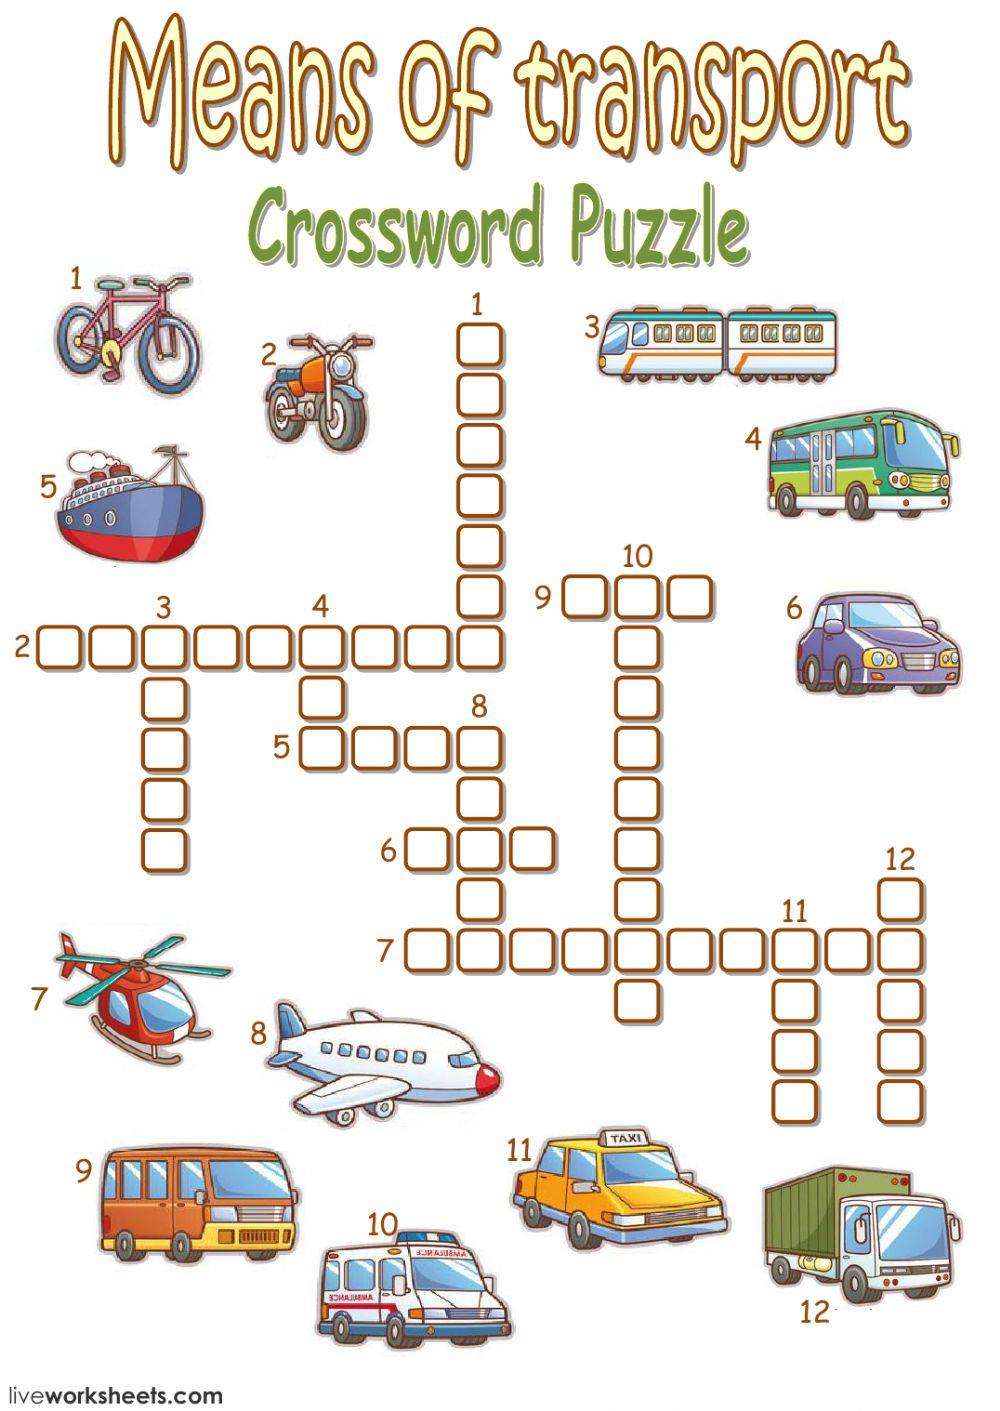 Means Of Transport Crossword Puzzle